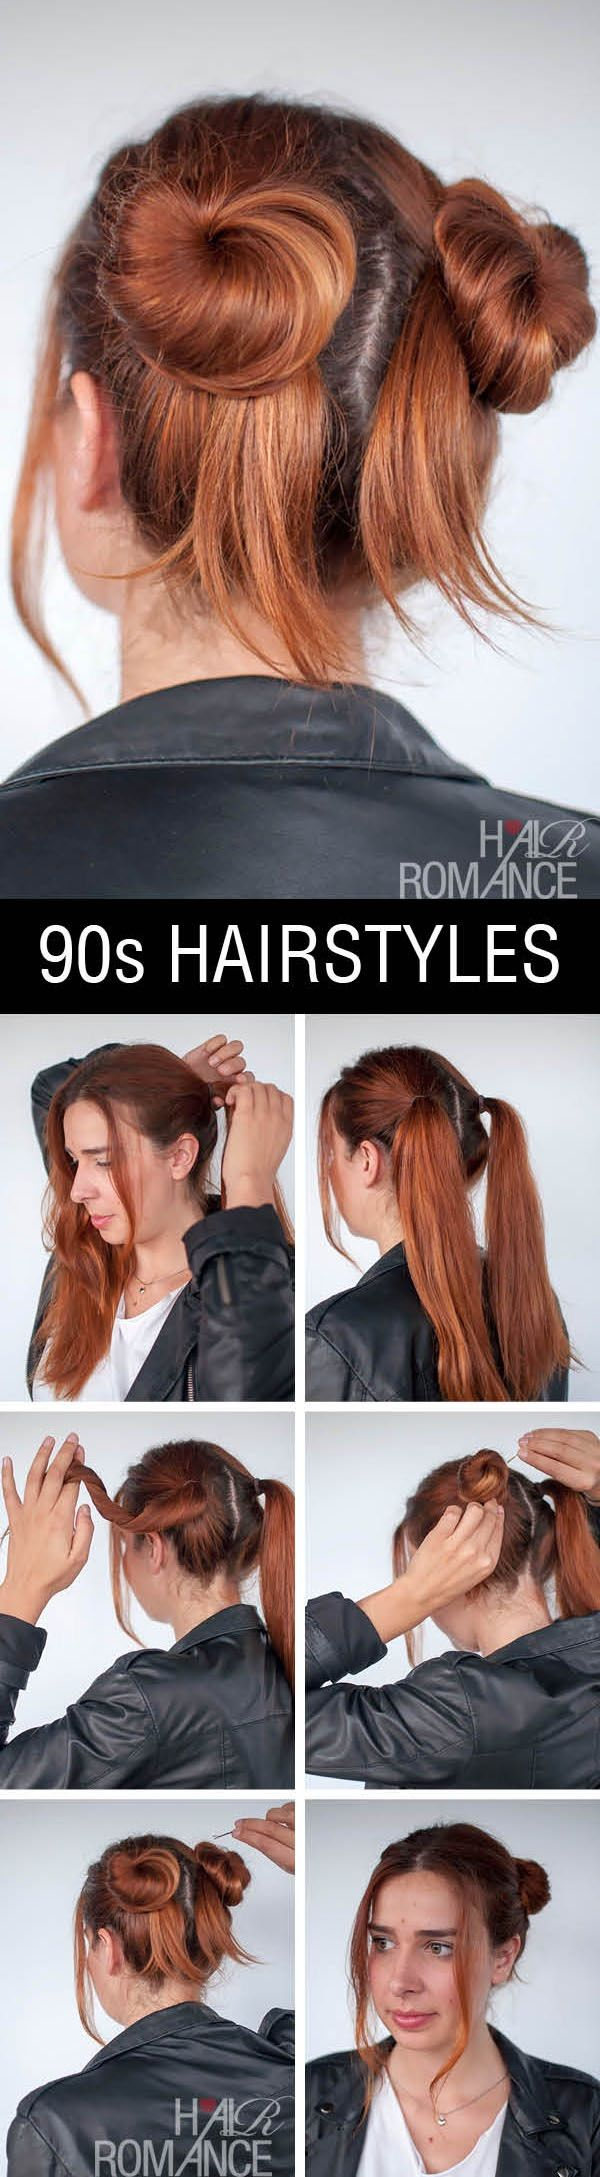 best hair dos images on pinterest hairdos s fashion and